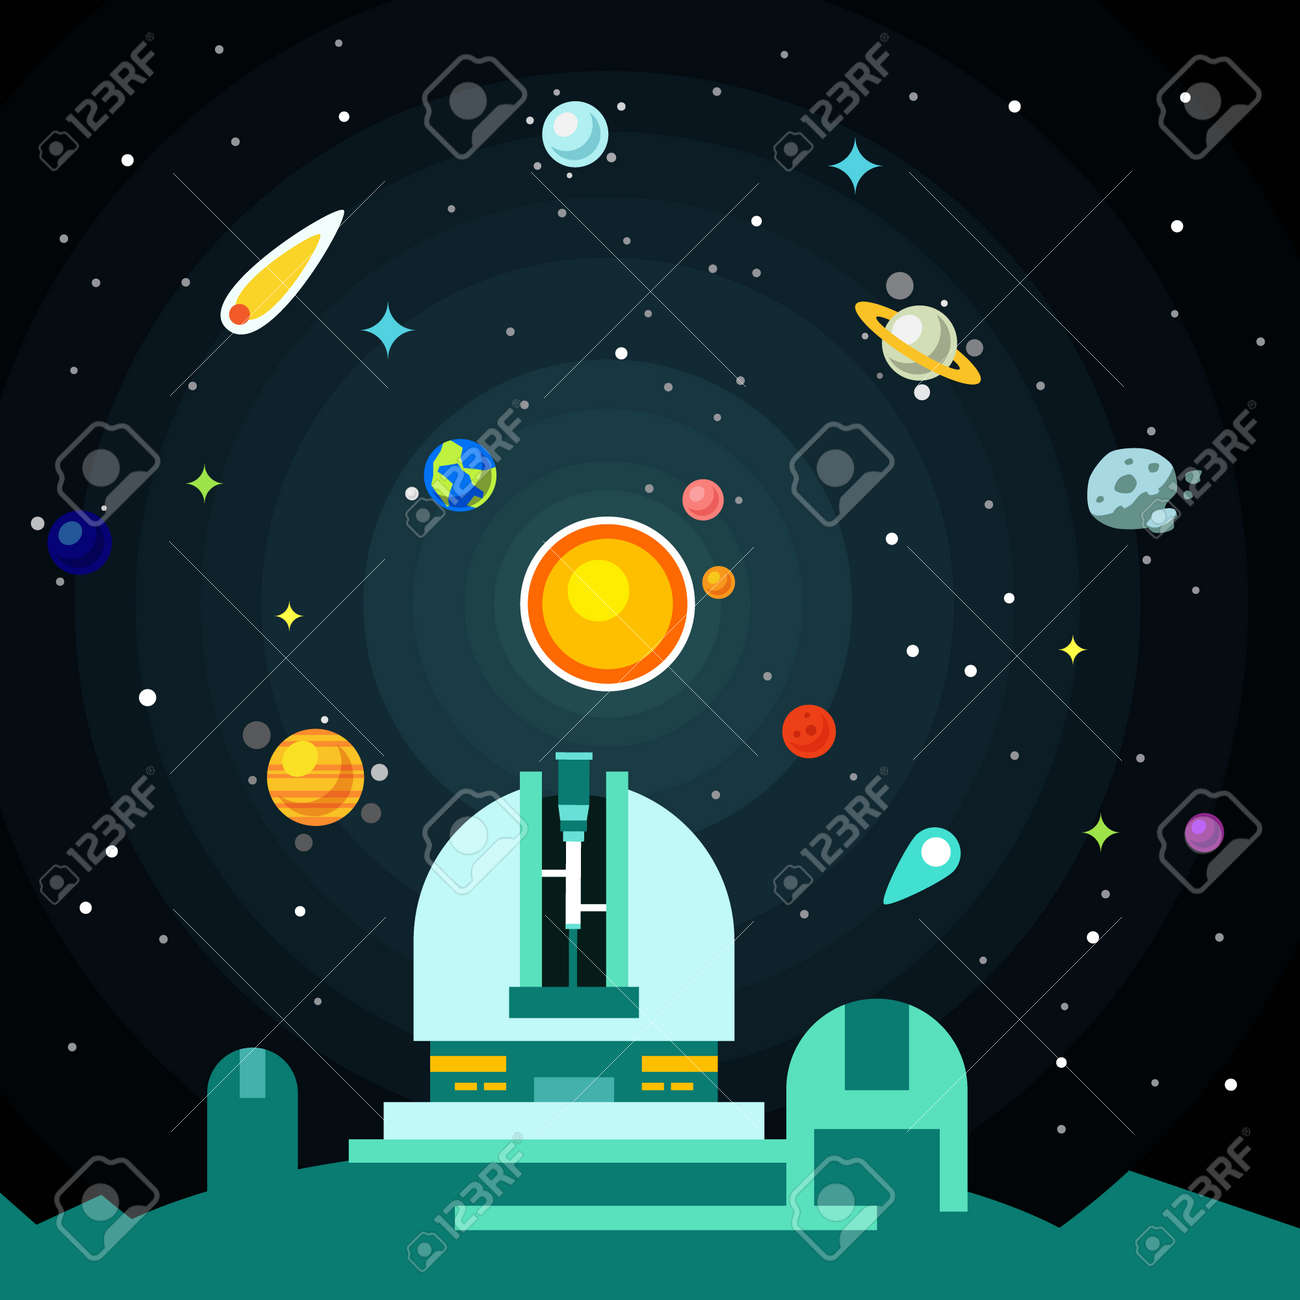 Observatory station, solar system with planets, comets and asteroids